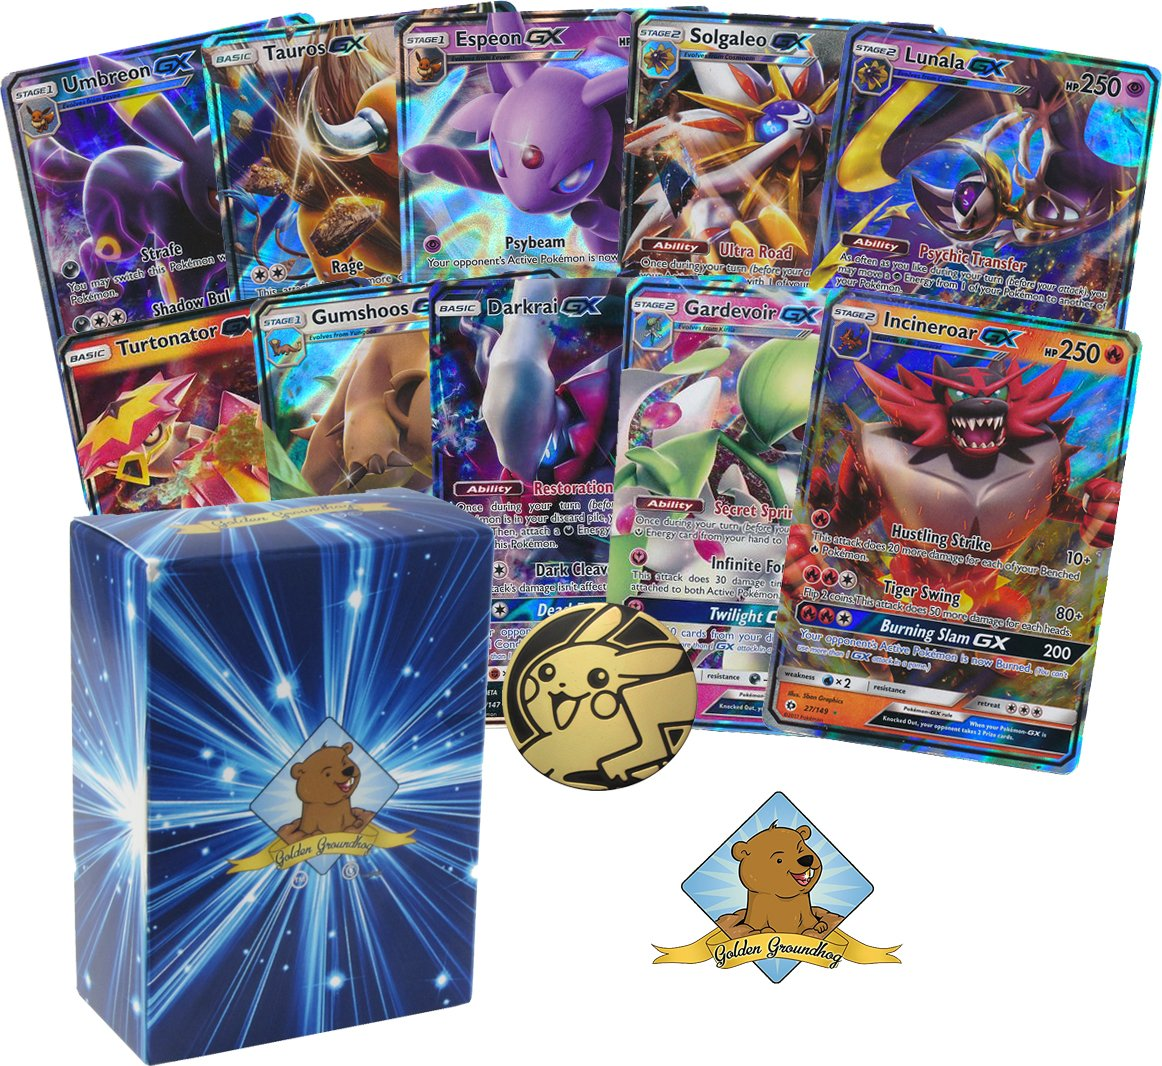 10 Pokemon Card Lot of ALL GX ULTRA RARES!!! No Duplication! Includes Golden Groundhog Box!